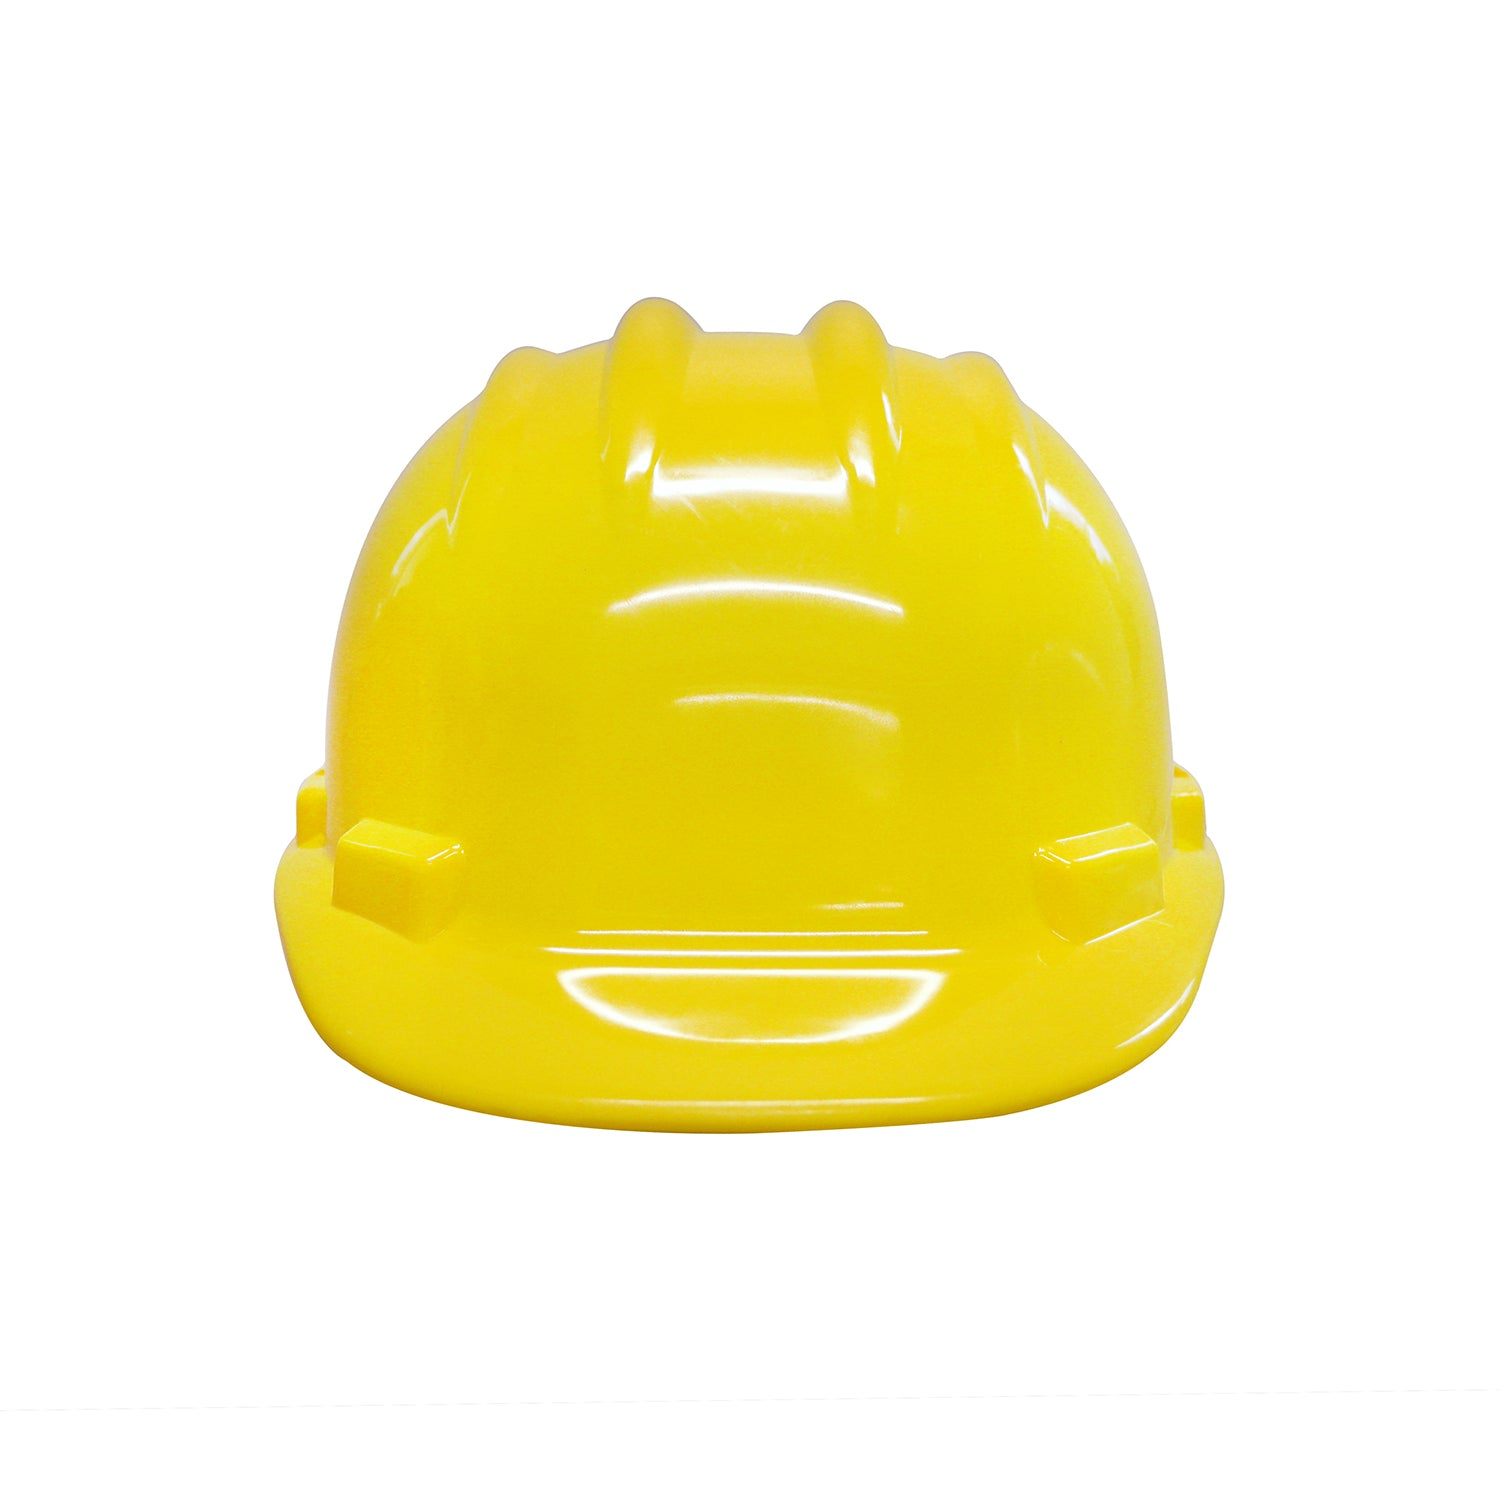 Hard Hat -Safety- eGPS Solutions Inc.